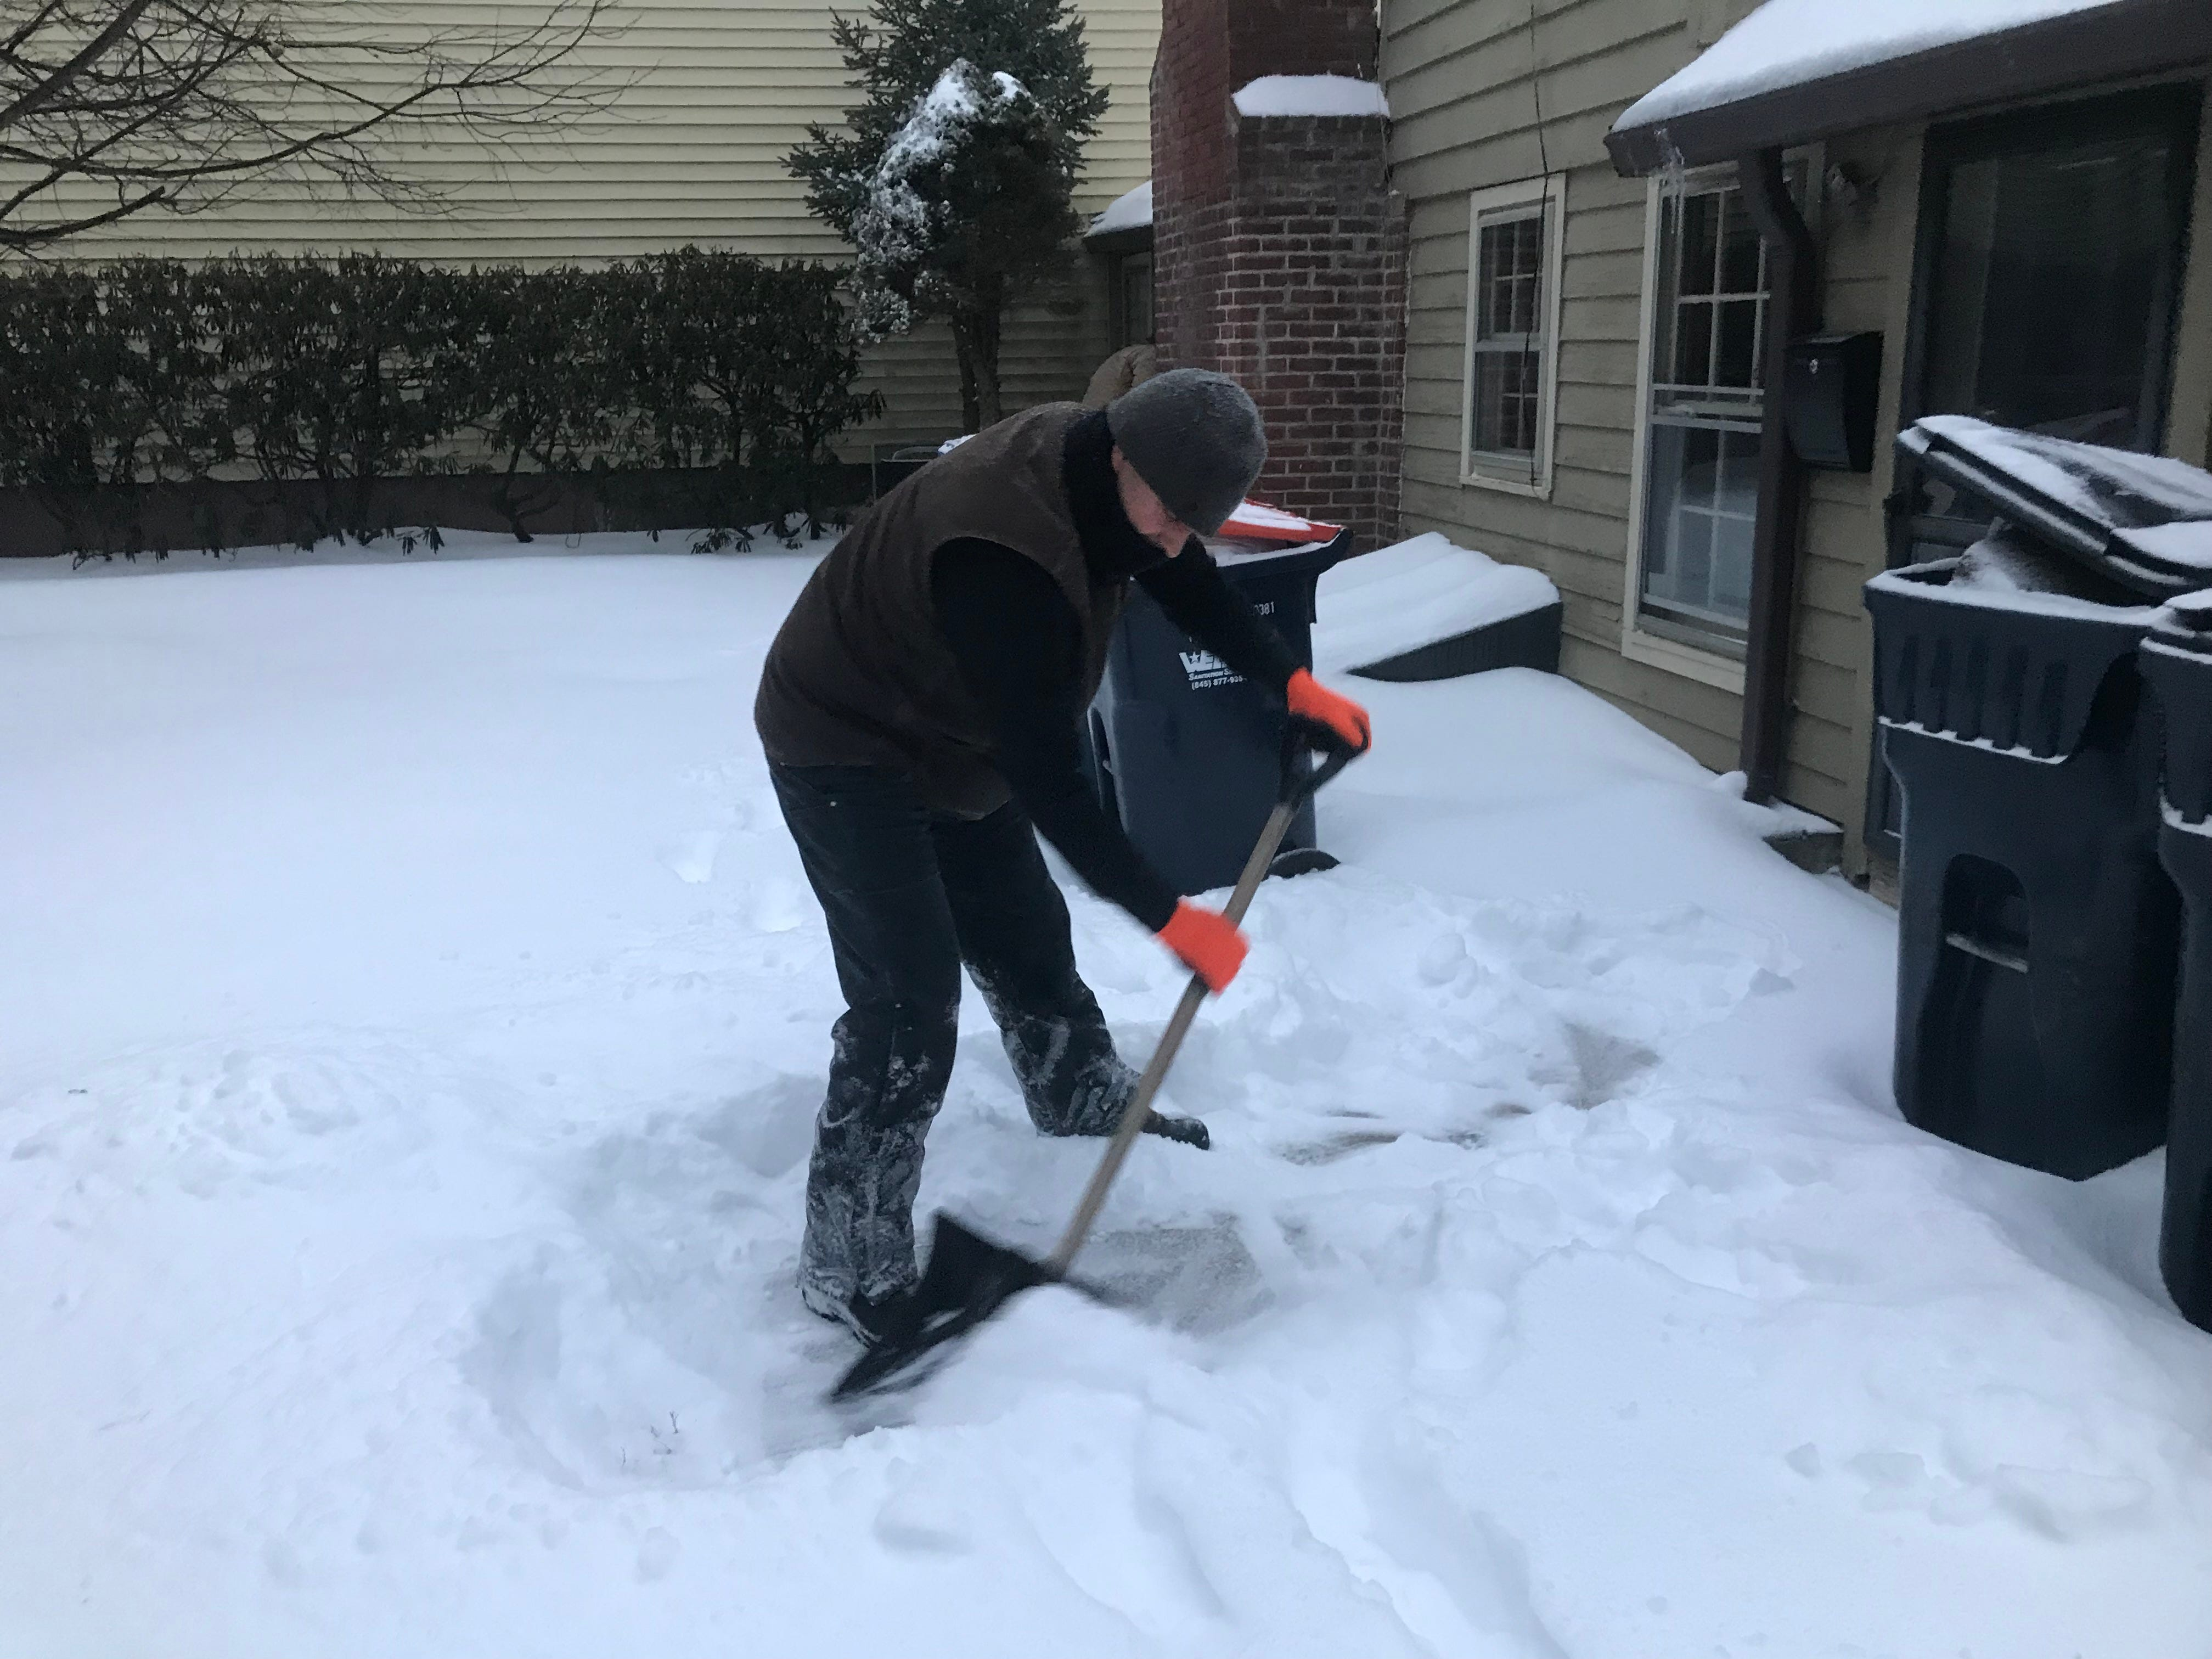 Aaron Murray of Red Hook, who works for J&K Curthoys in Rhinebeck, shovels snow in Rhinebeck Sunday morning.